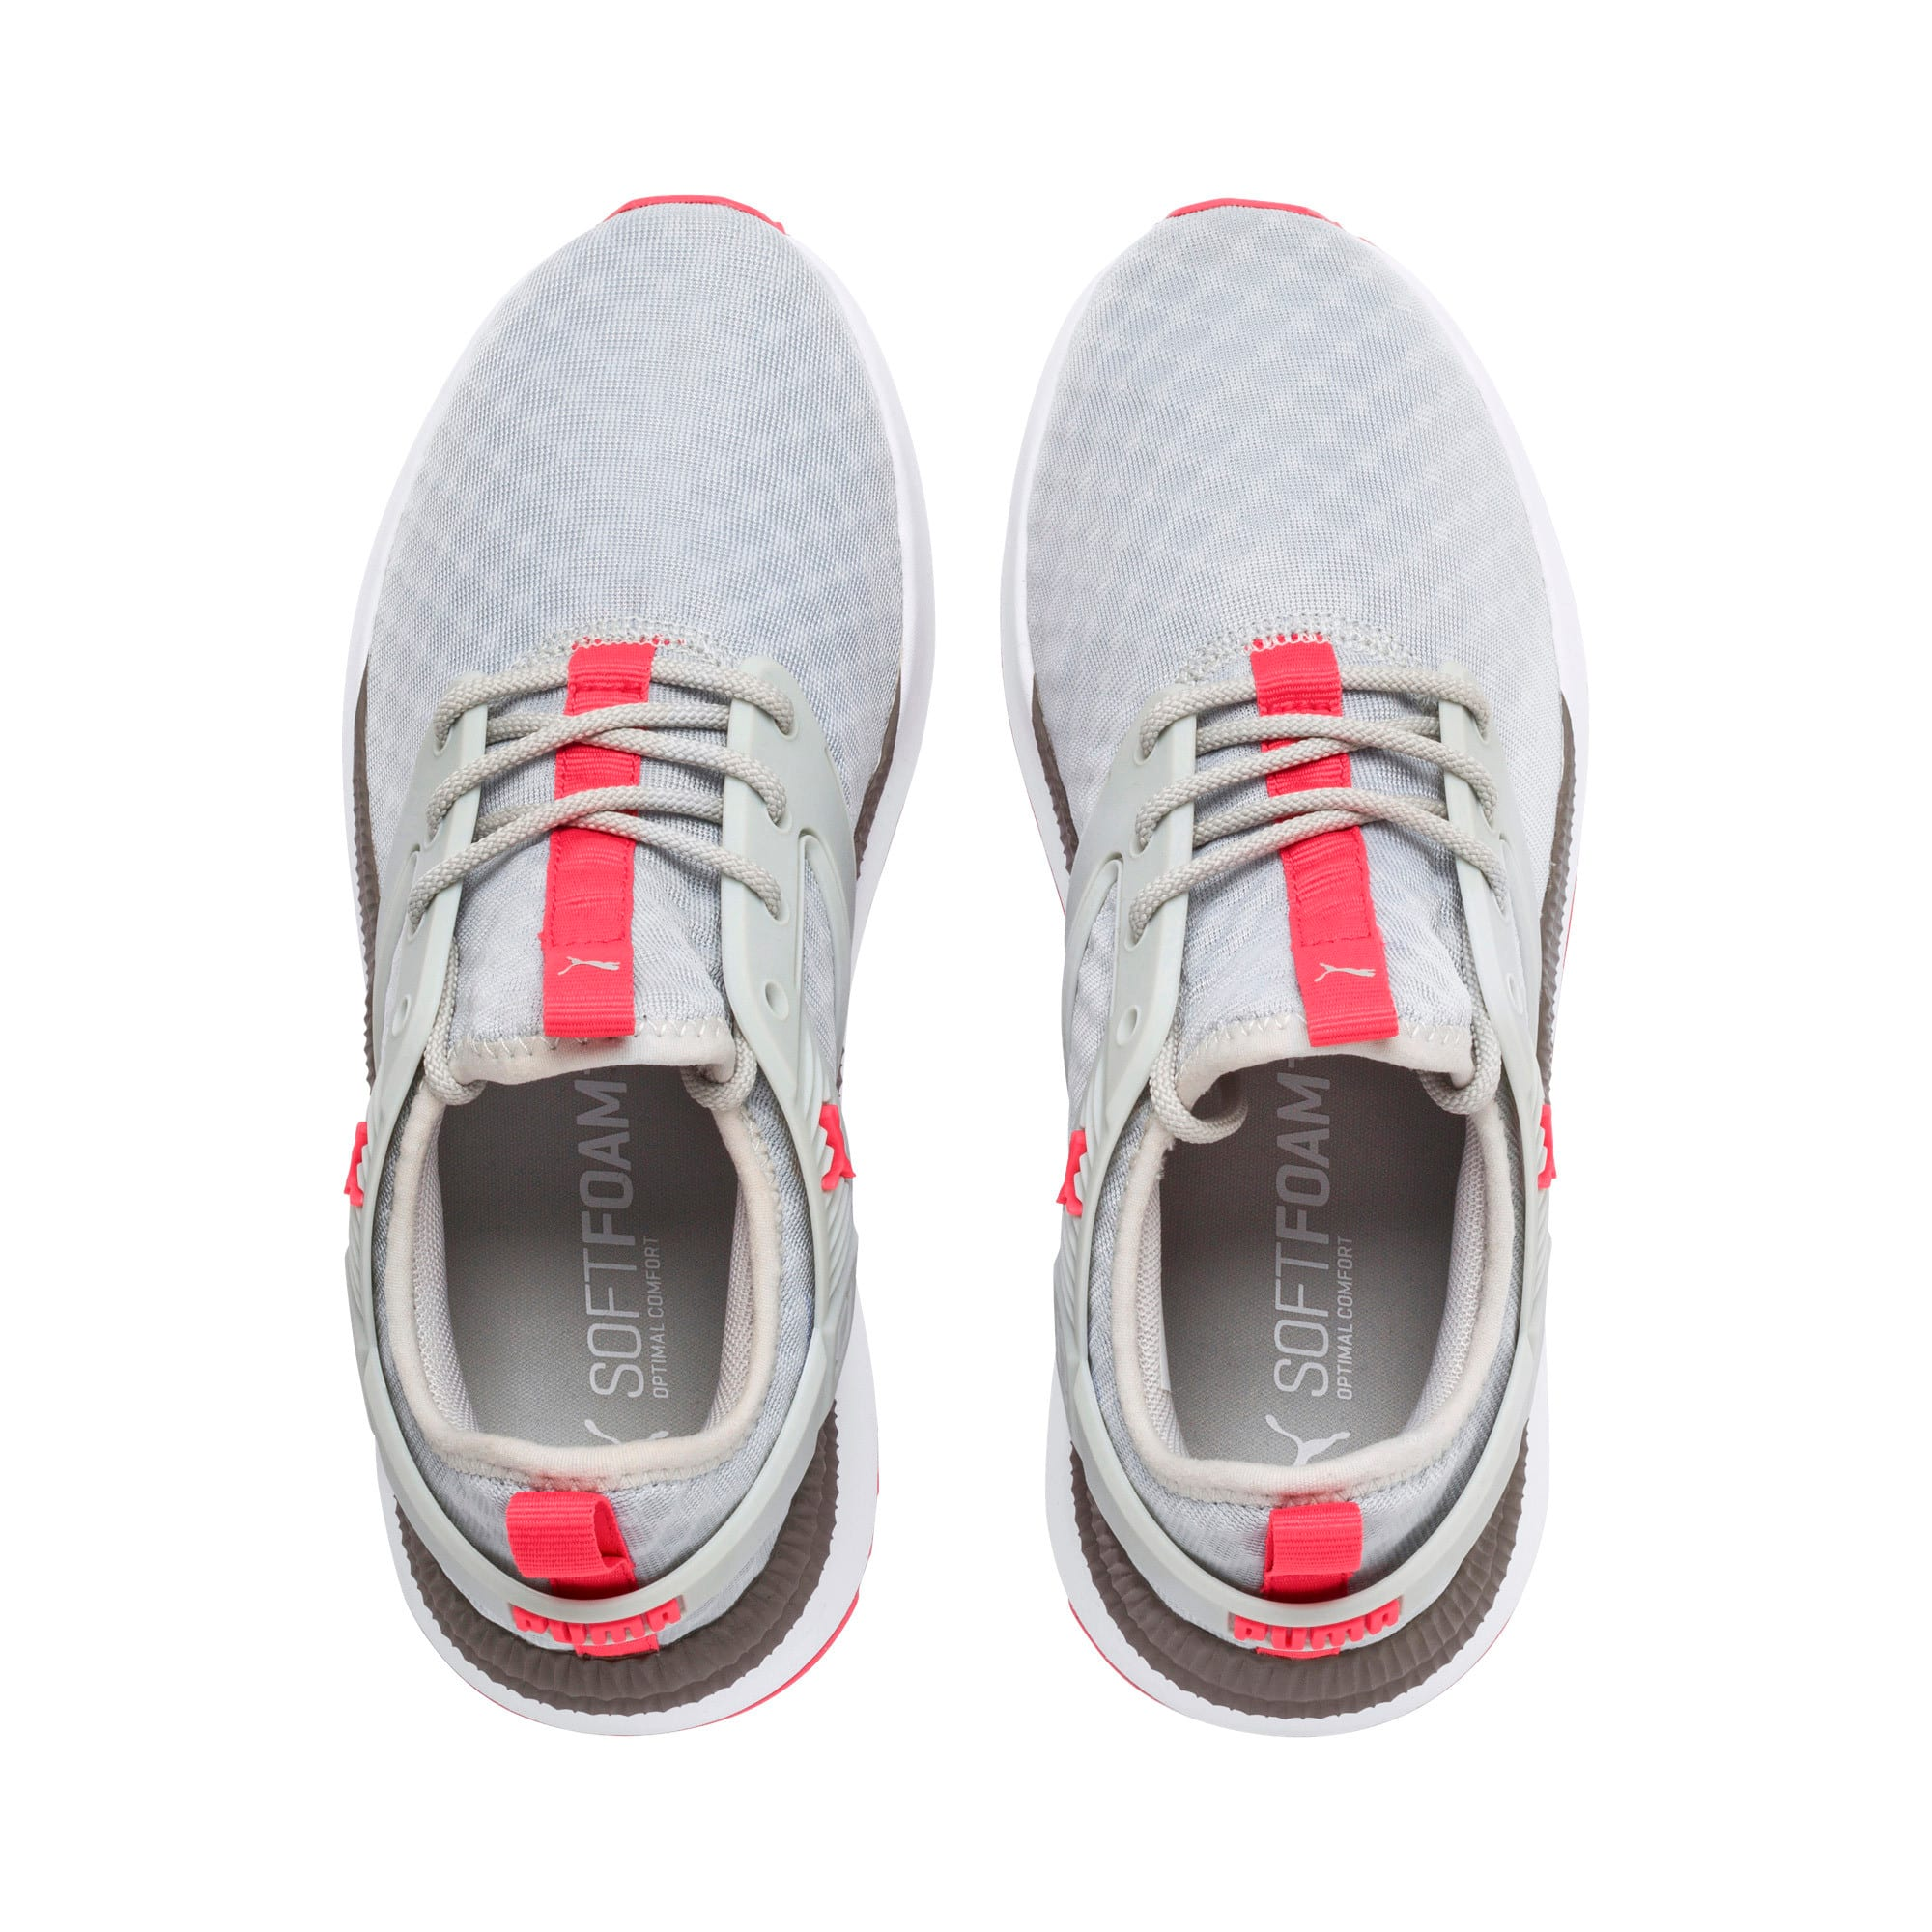 Thumbnail 7 of Pacer Next Excel Running Shoes, Gray Violet-Calypso Coral, medium